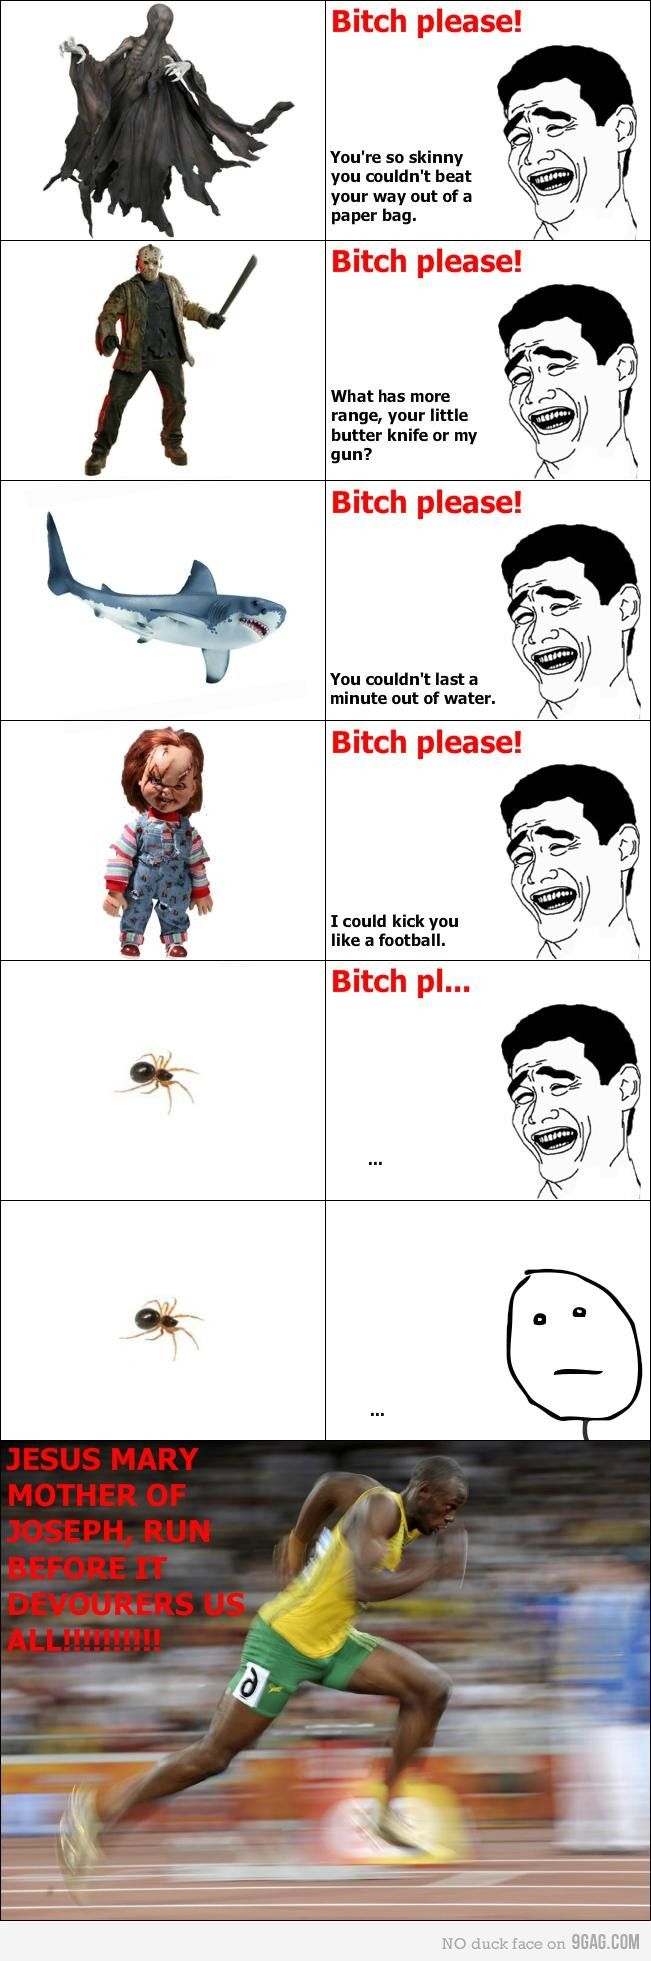 these spider memes always crack me up.